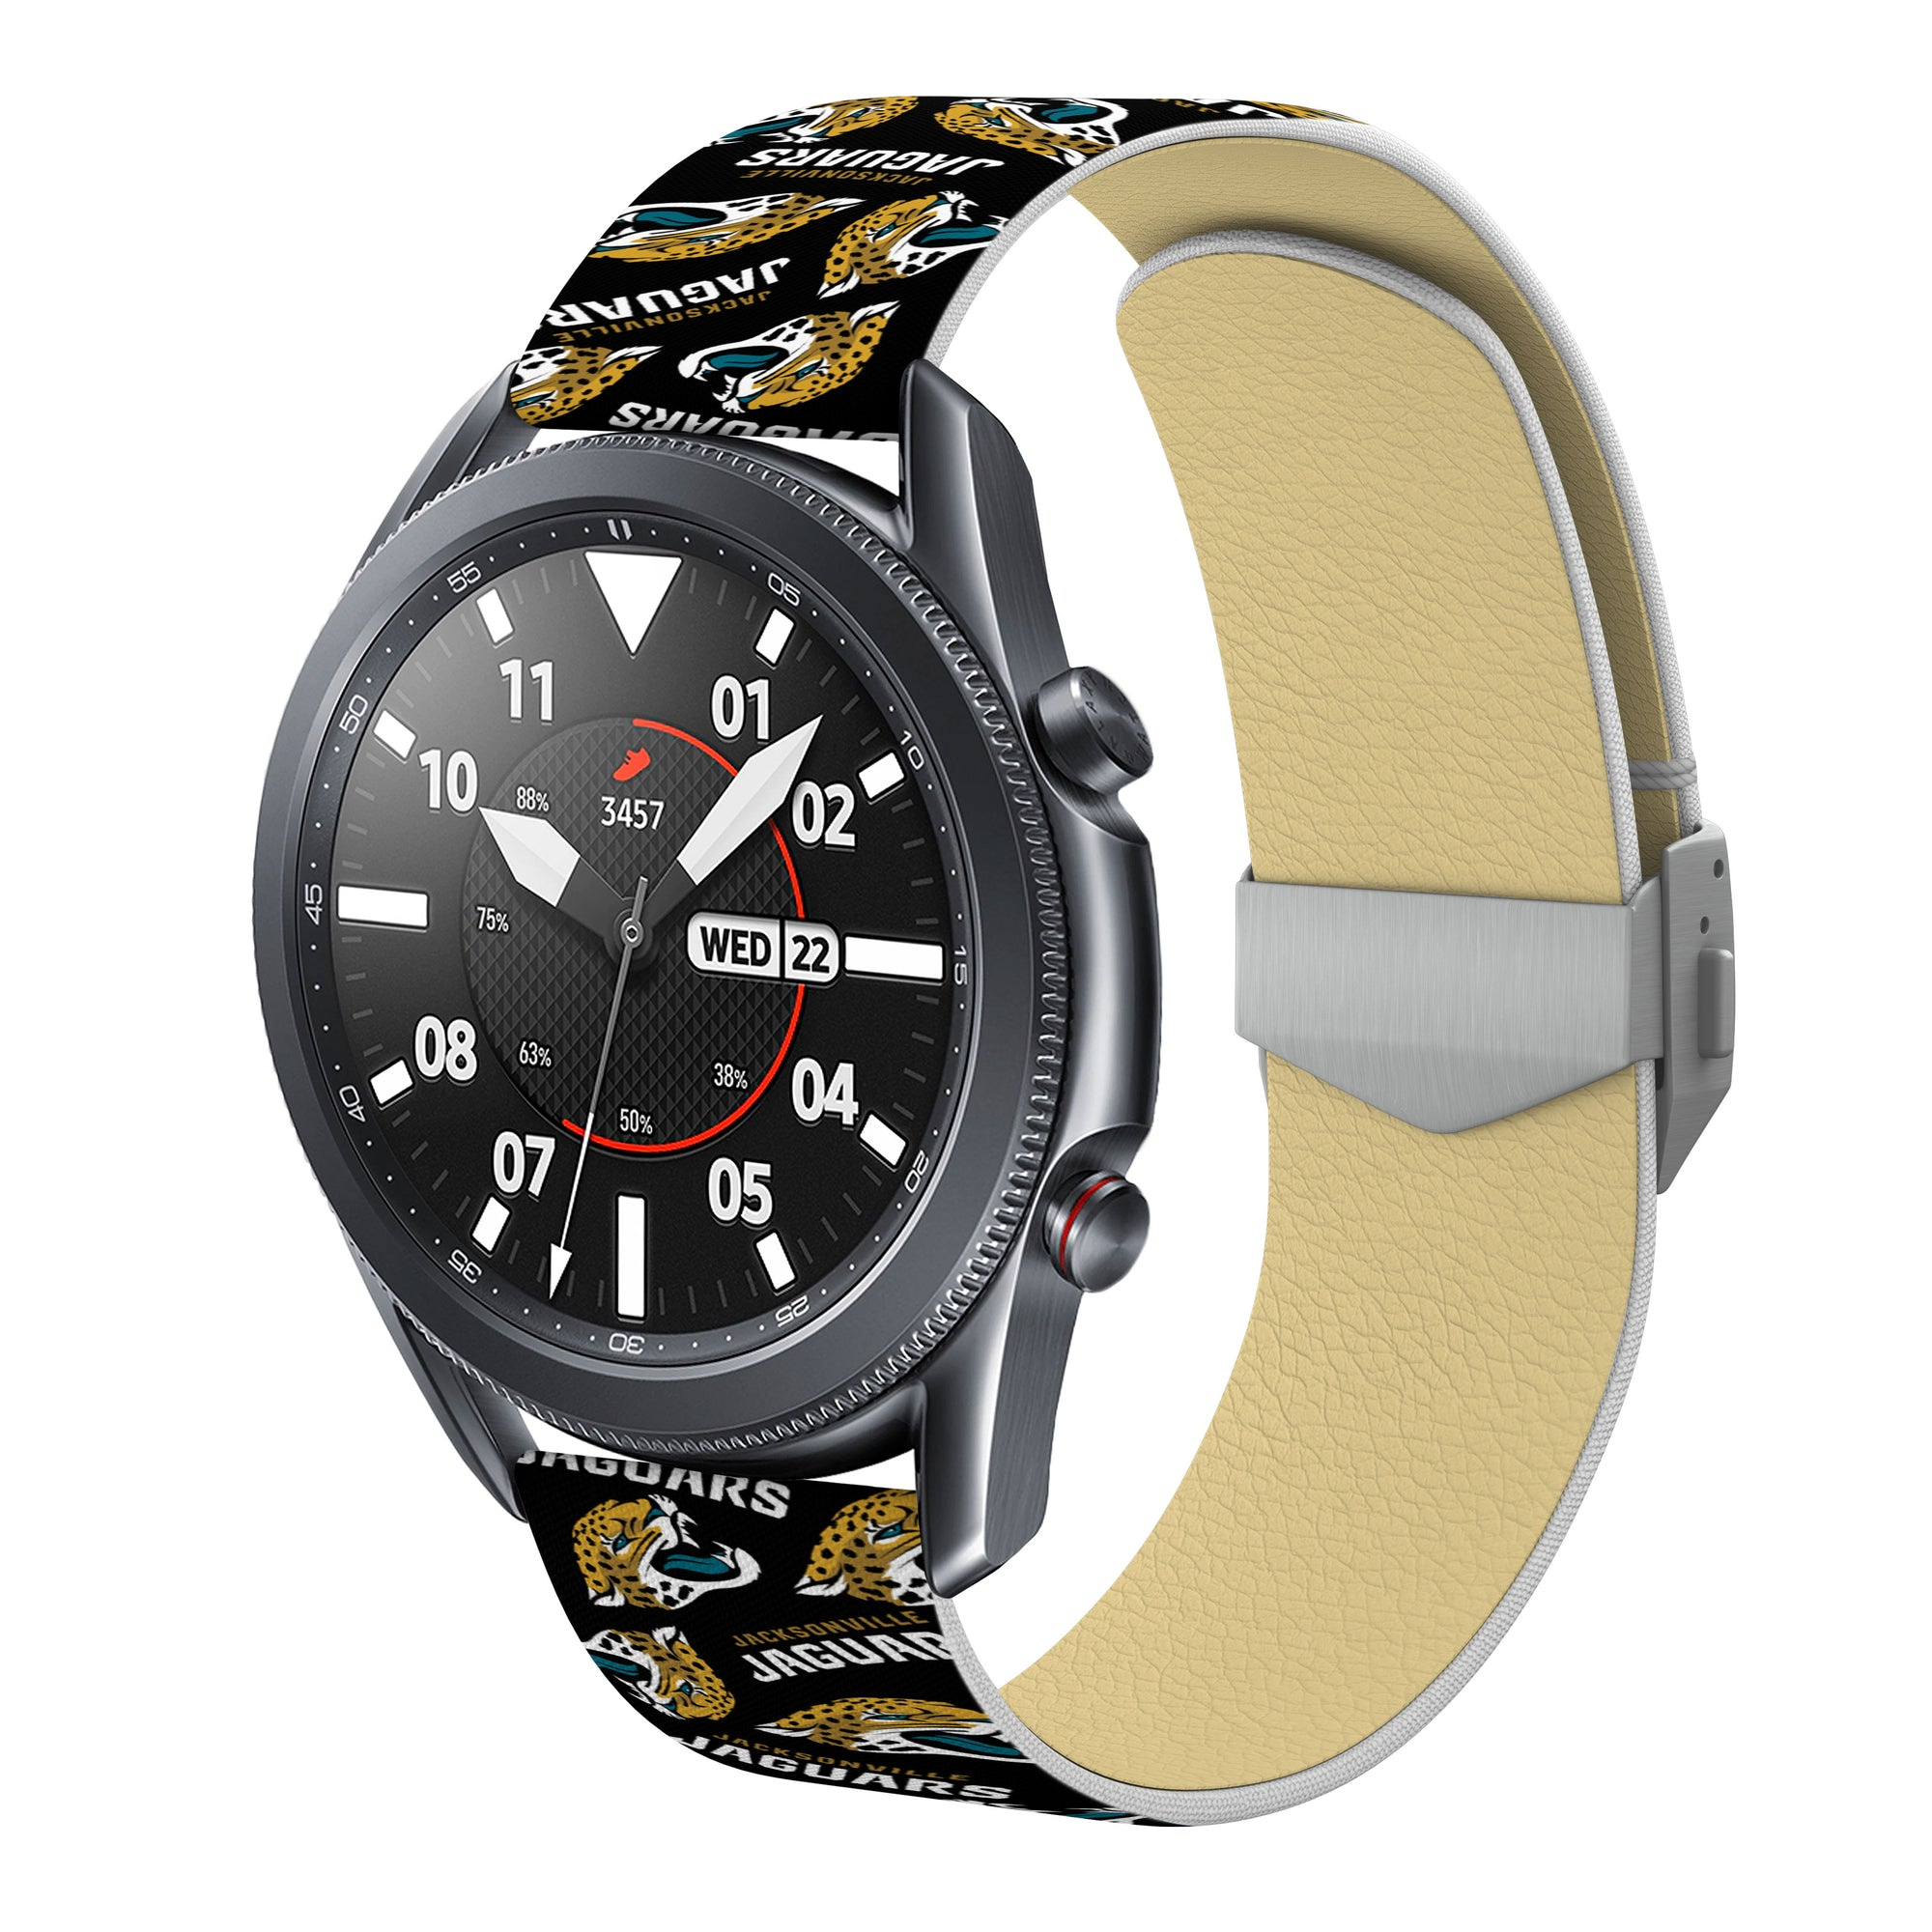 Jacksonville Jaguars Full Print Quick Change Watch Band With Engraved Buckle - AffinityBands